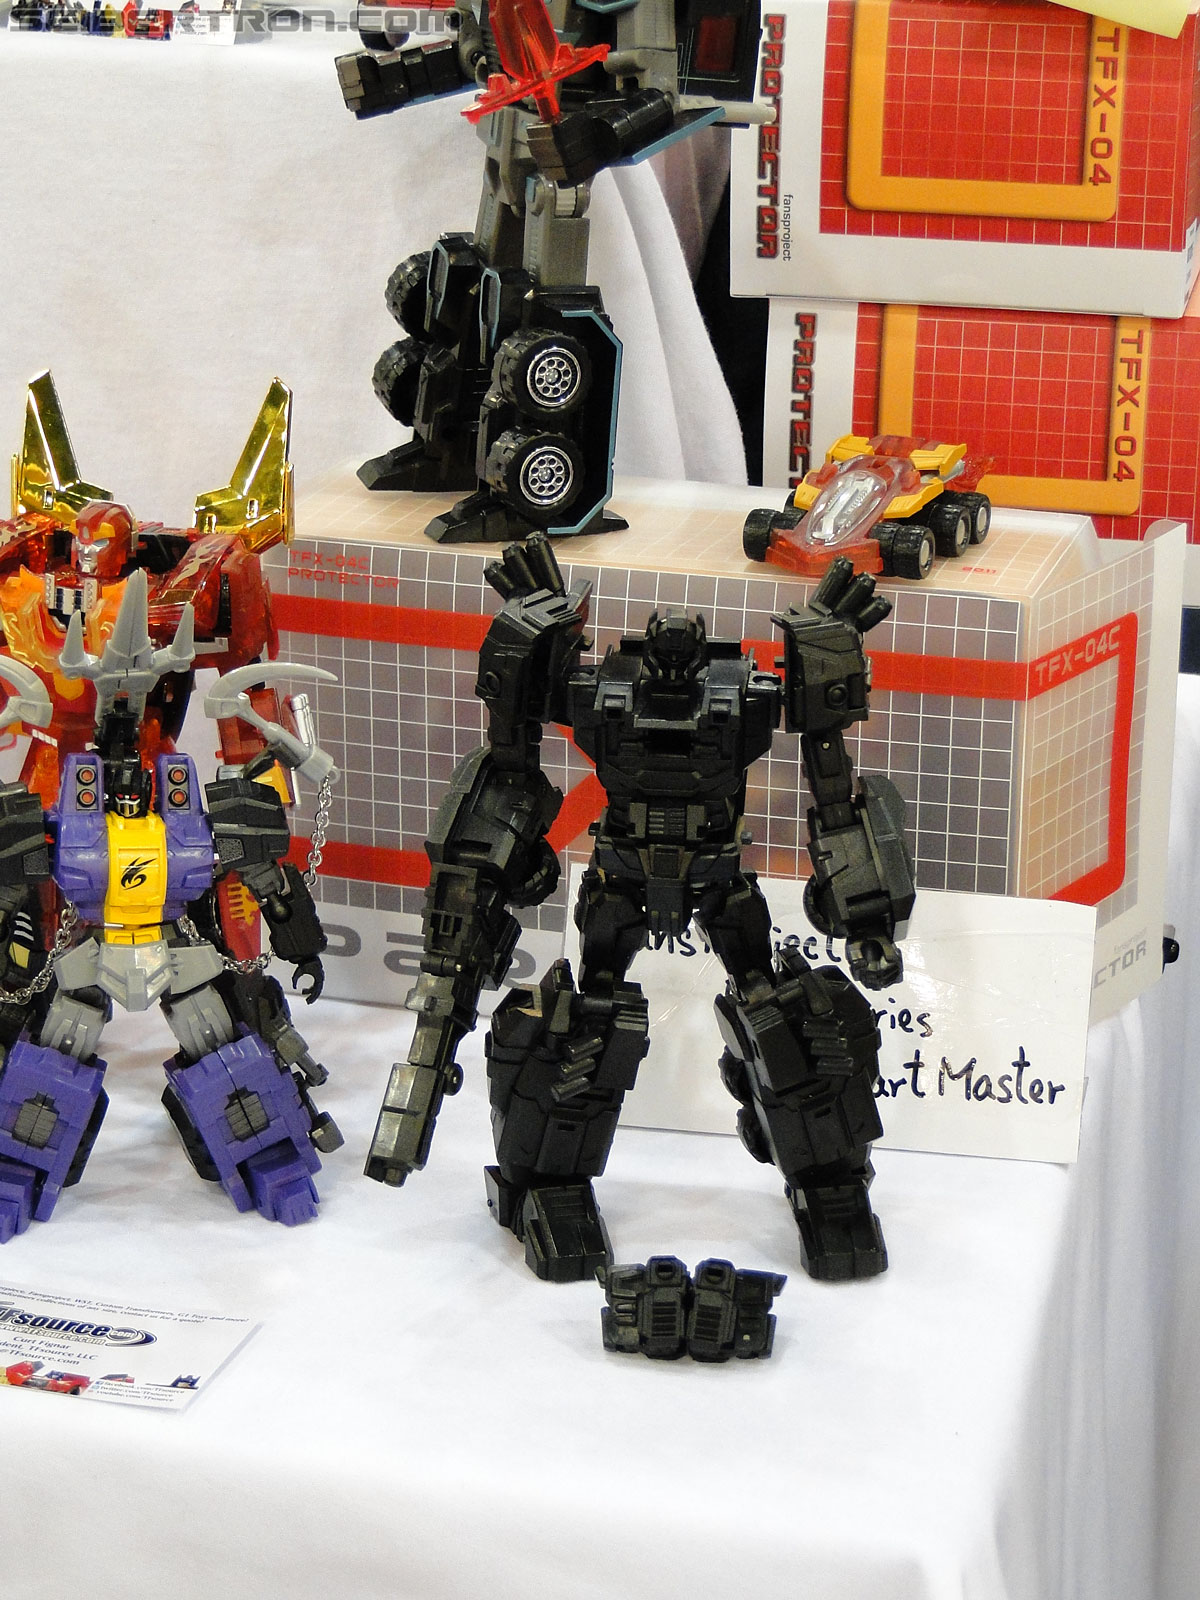 Botcon 2011 - 3rd Party Products